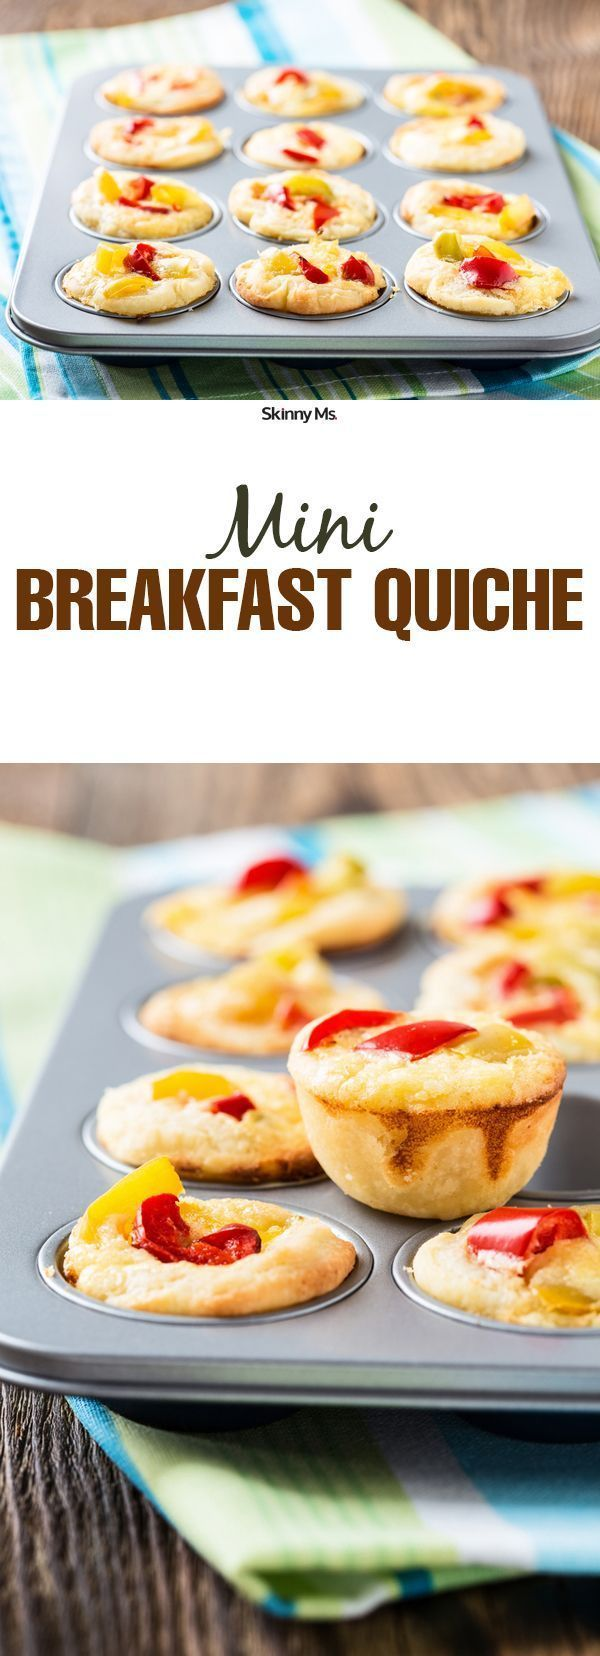 A delicious way to start the day--Mini Breakfast Quiche!